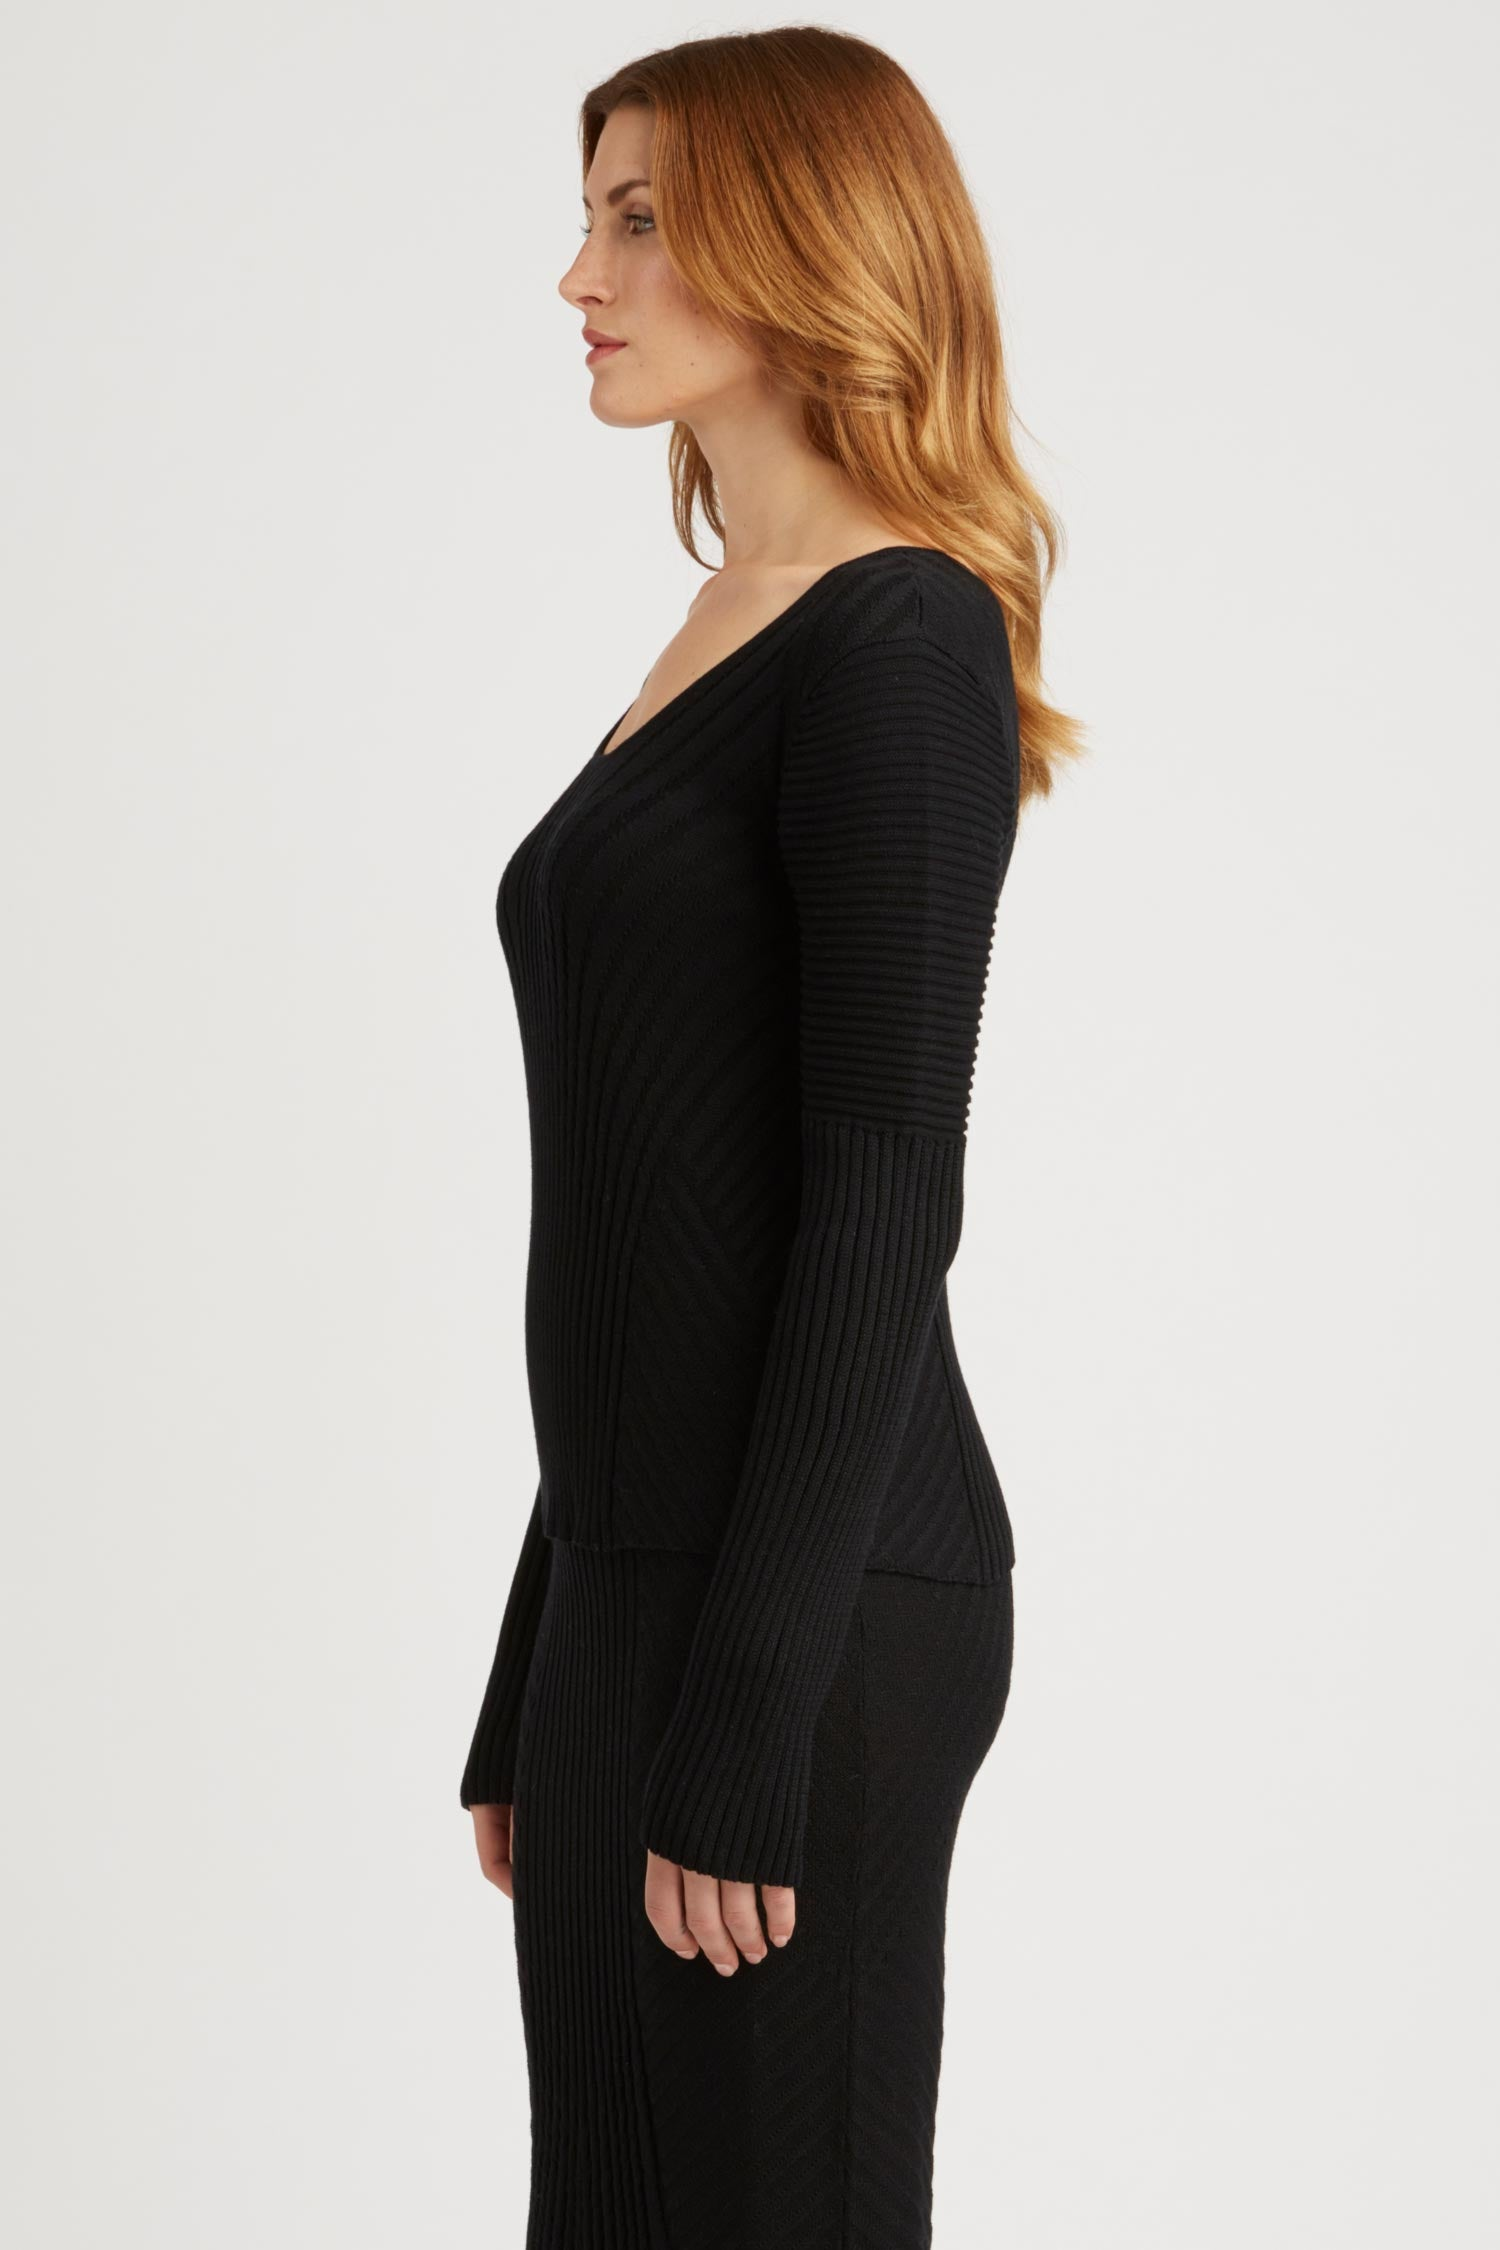 Womens Knit Sweater Top in Black | Organic Cotton Clothing